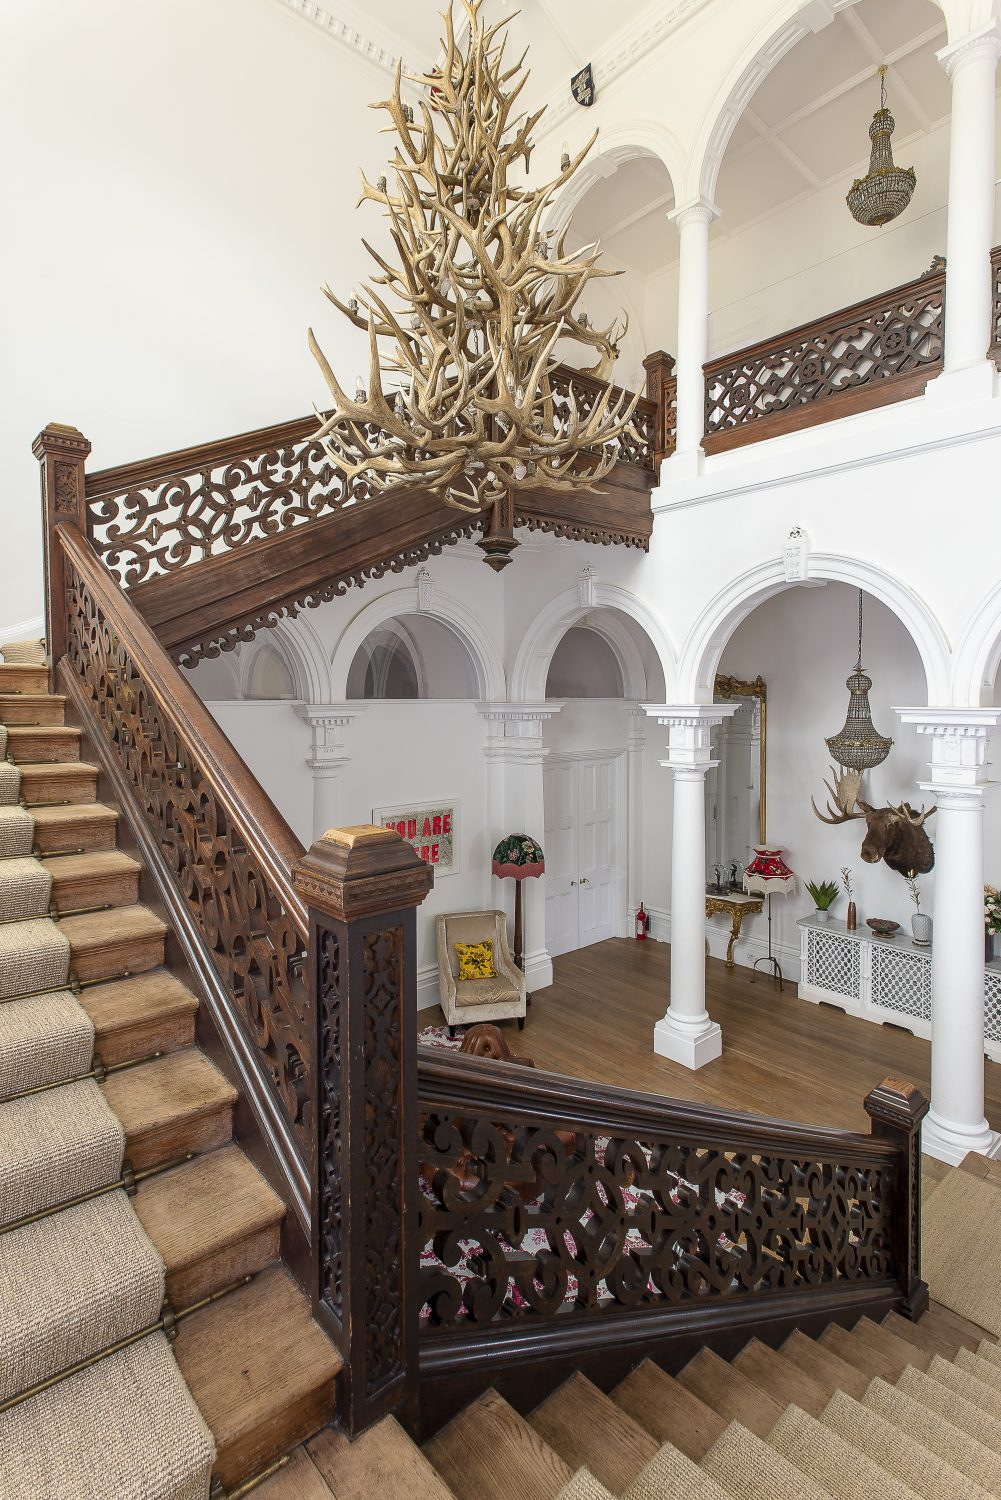 One of the most impressive spaces in the house is the double height inner hallway around which a carved wooden staircase floats